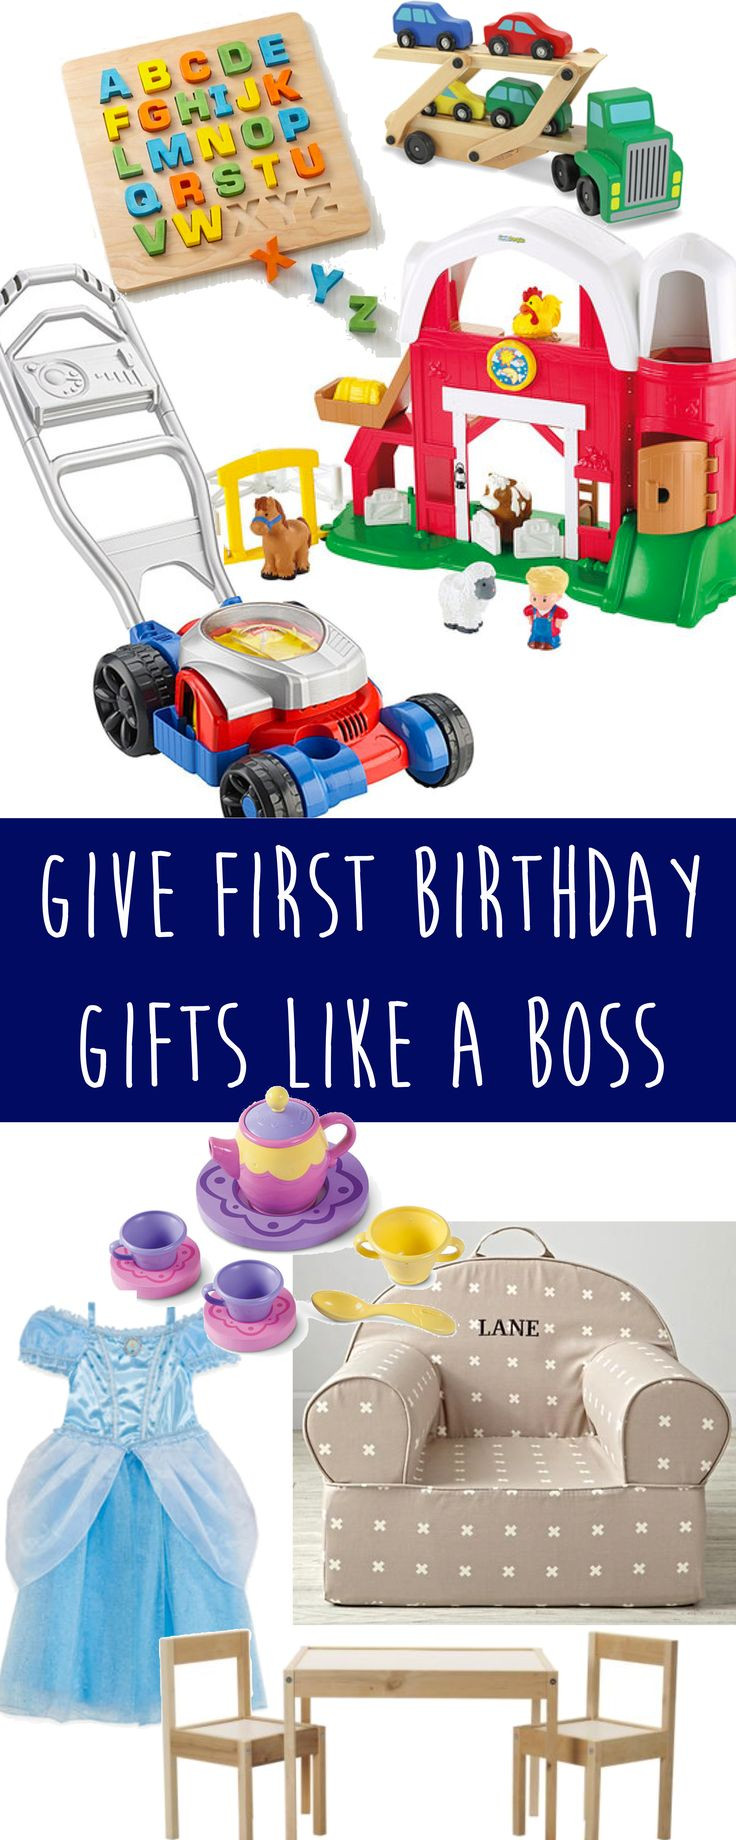 Gift Ideas For First Birthday  25 Best Ideas about First Birthday Gifts on Pinterest